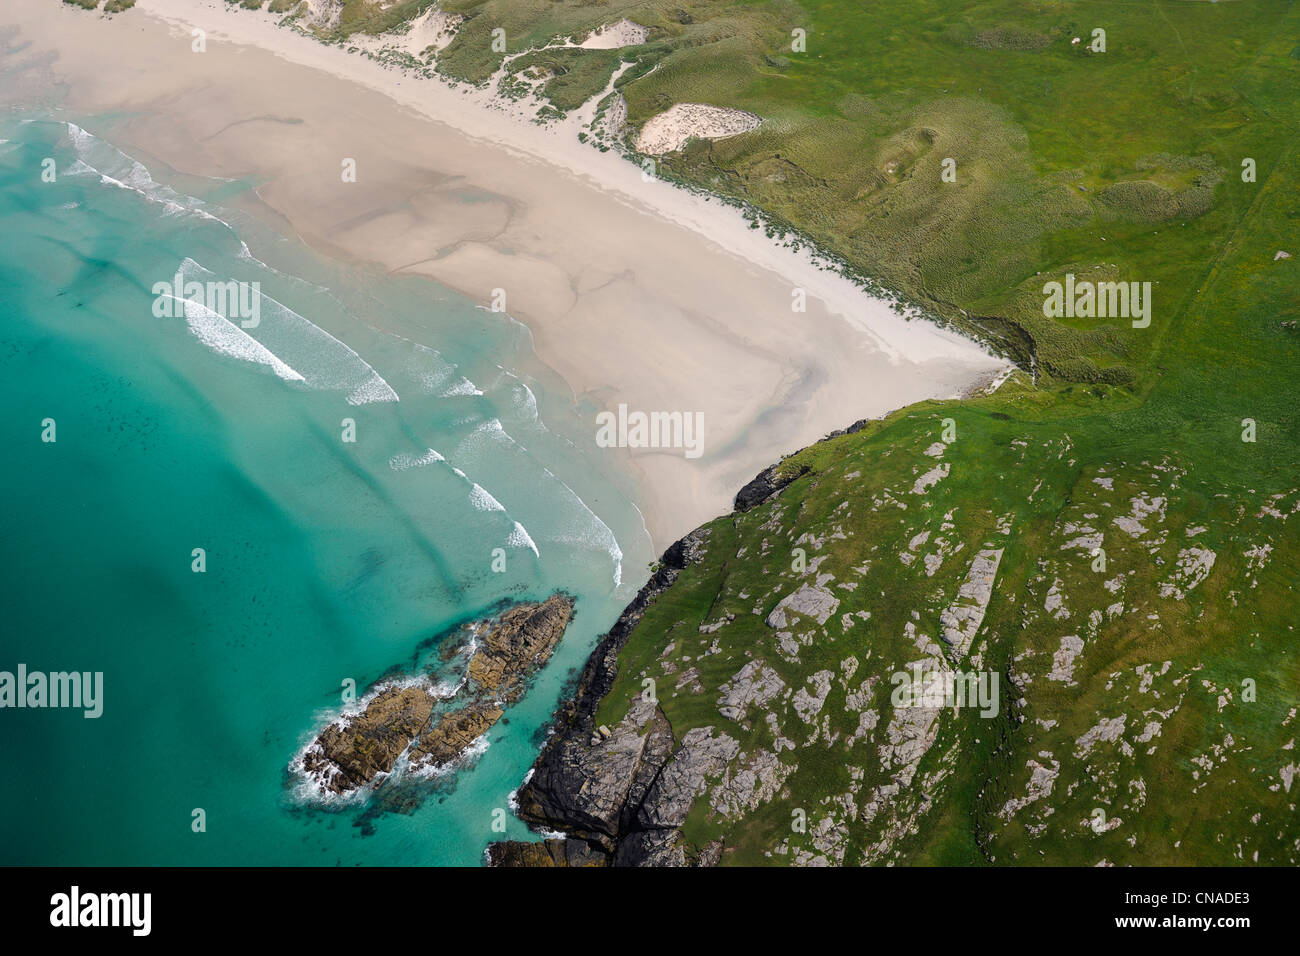 United Kingdom, Scotland, Outer Hebrides, Isle of Barra, beach on the north coast (aerial view) - Stock Image